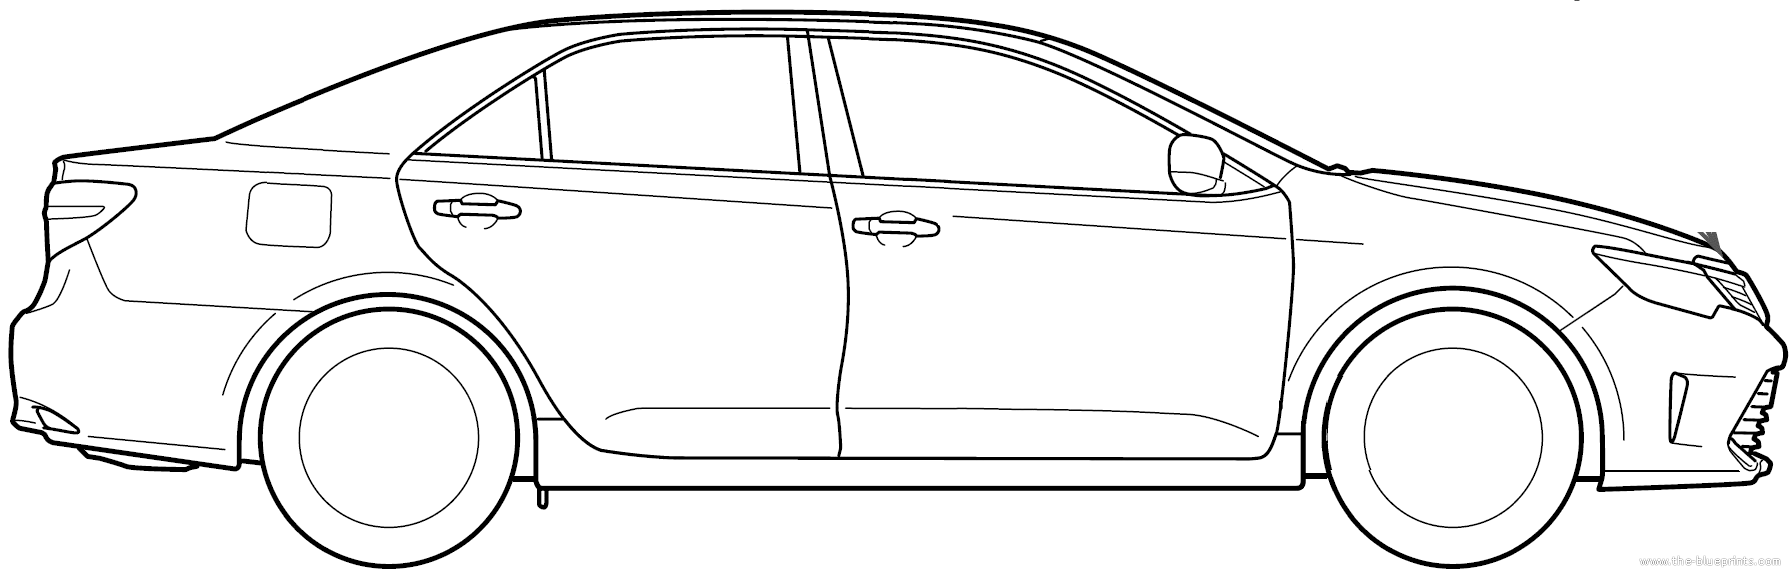 The blueprints blueprints cars toyota toyota camry 2015 toyota camry 2015 malvernweather Image collections